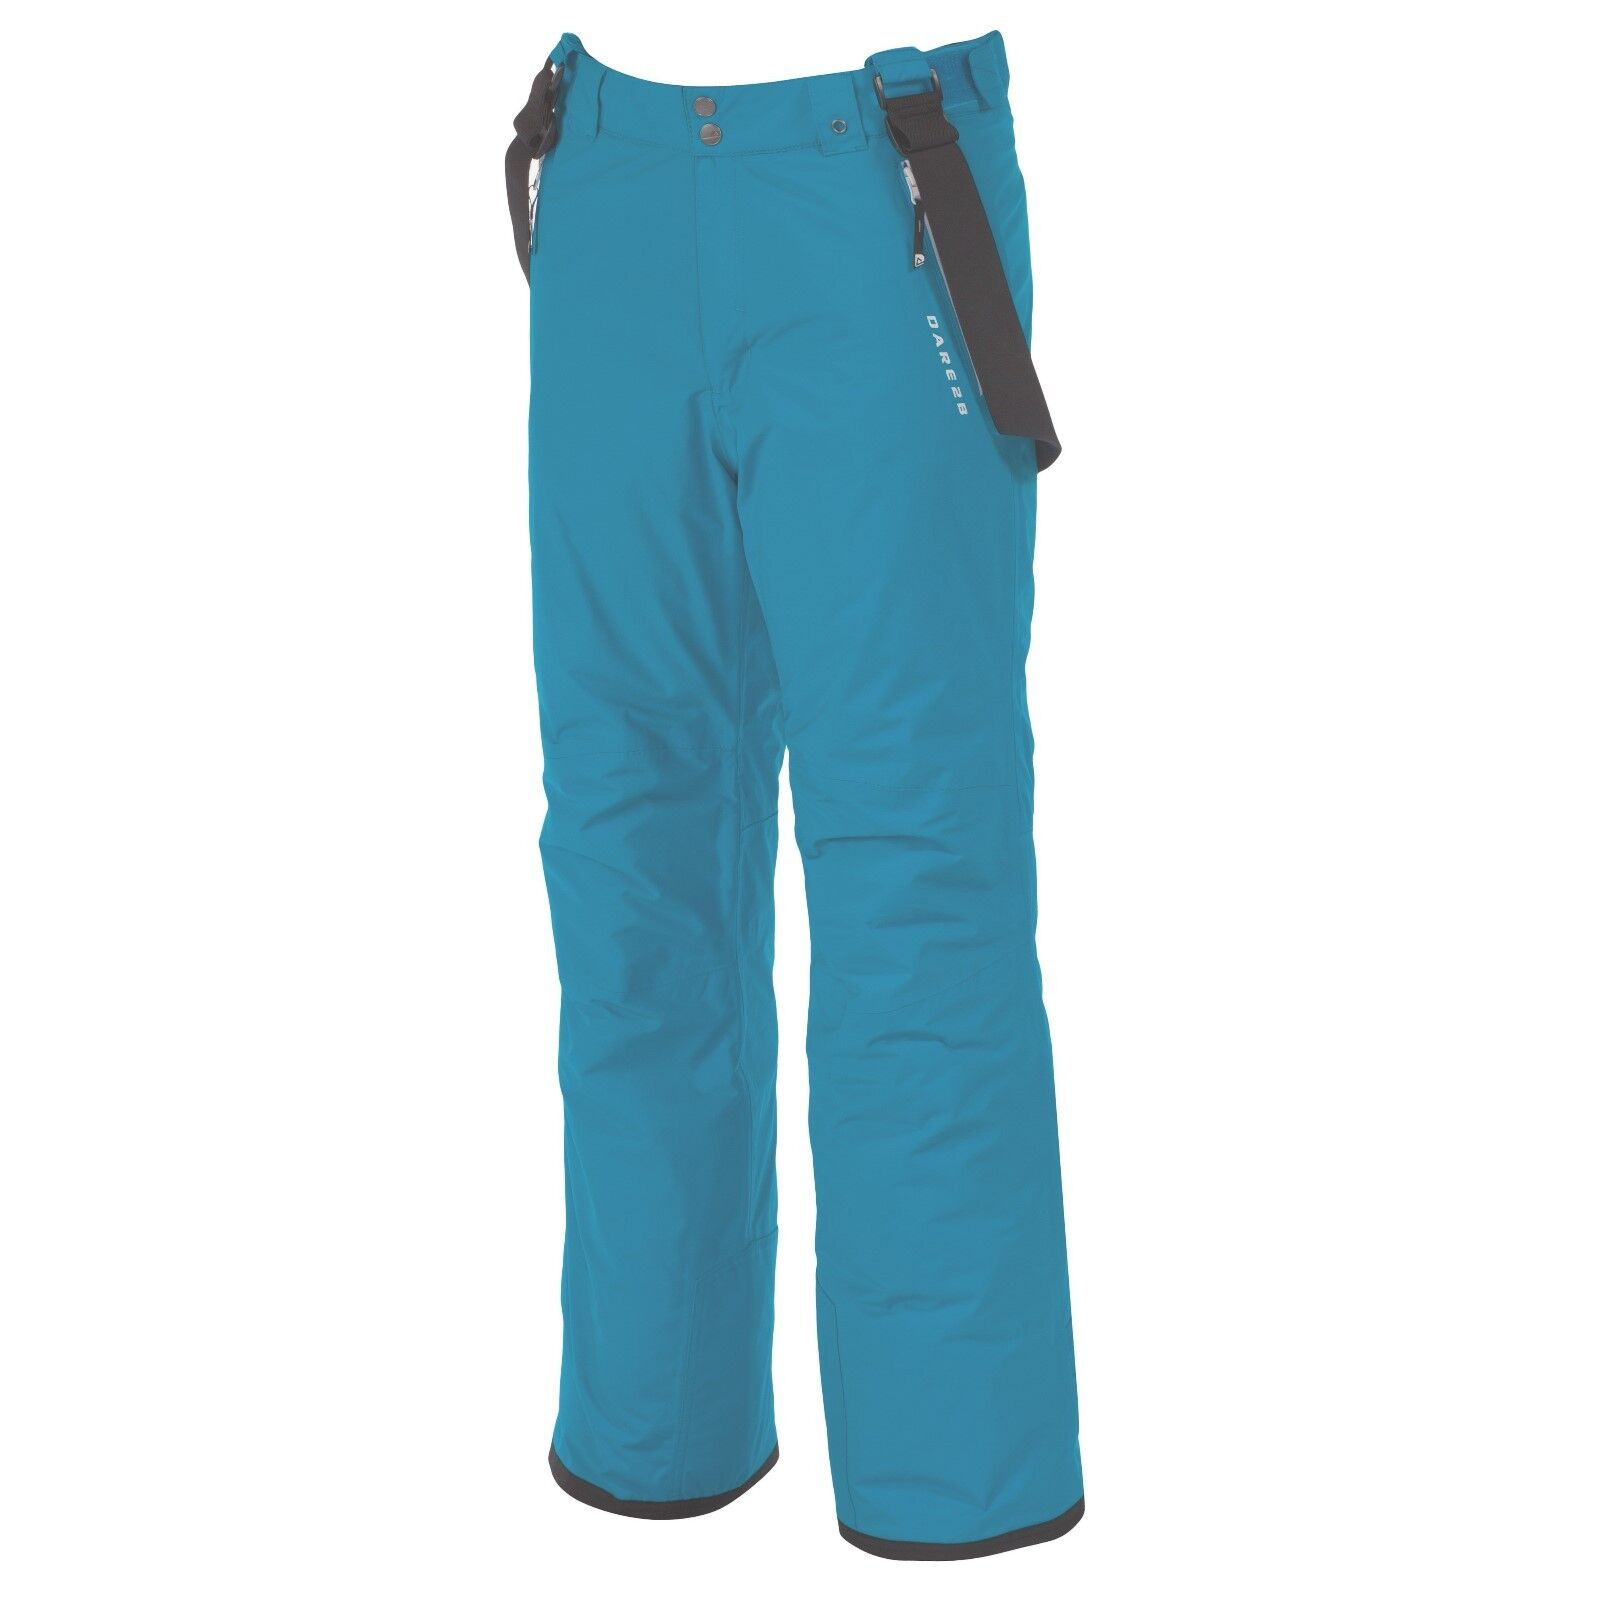 Dare2b Keep UP III MENS METHYL blueE Ski Salopettes Pants  Braces SHORT LEG 10K  after-sale protection